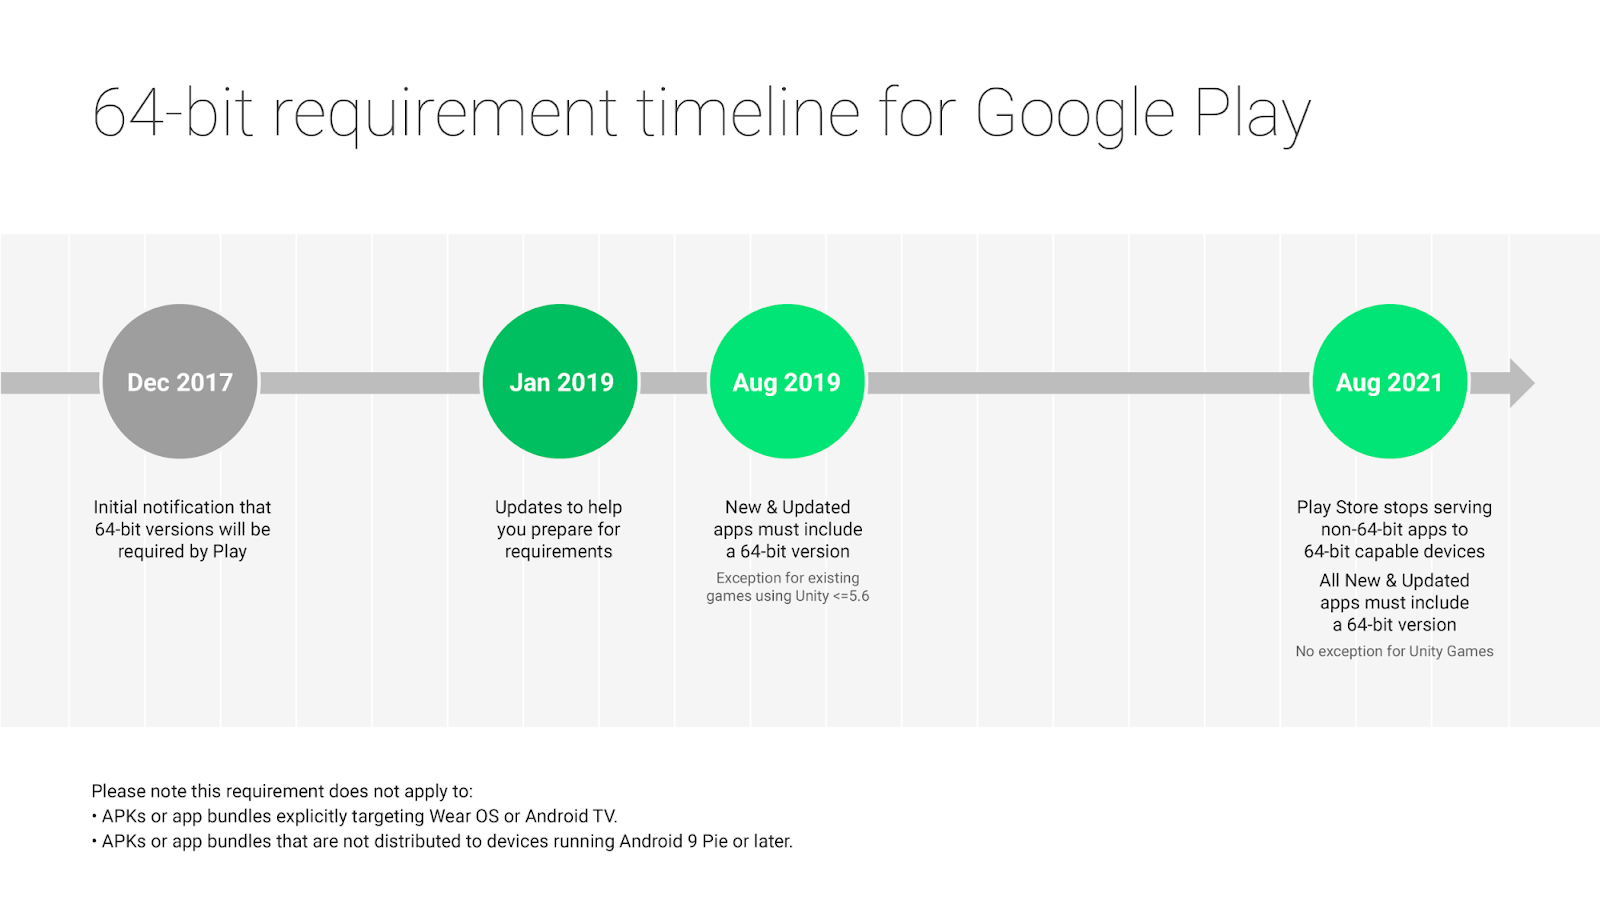 Android Developers Blog: Get your apps ready for the 64-bit requirement